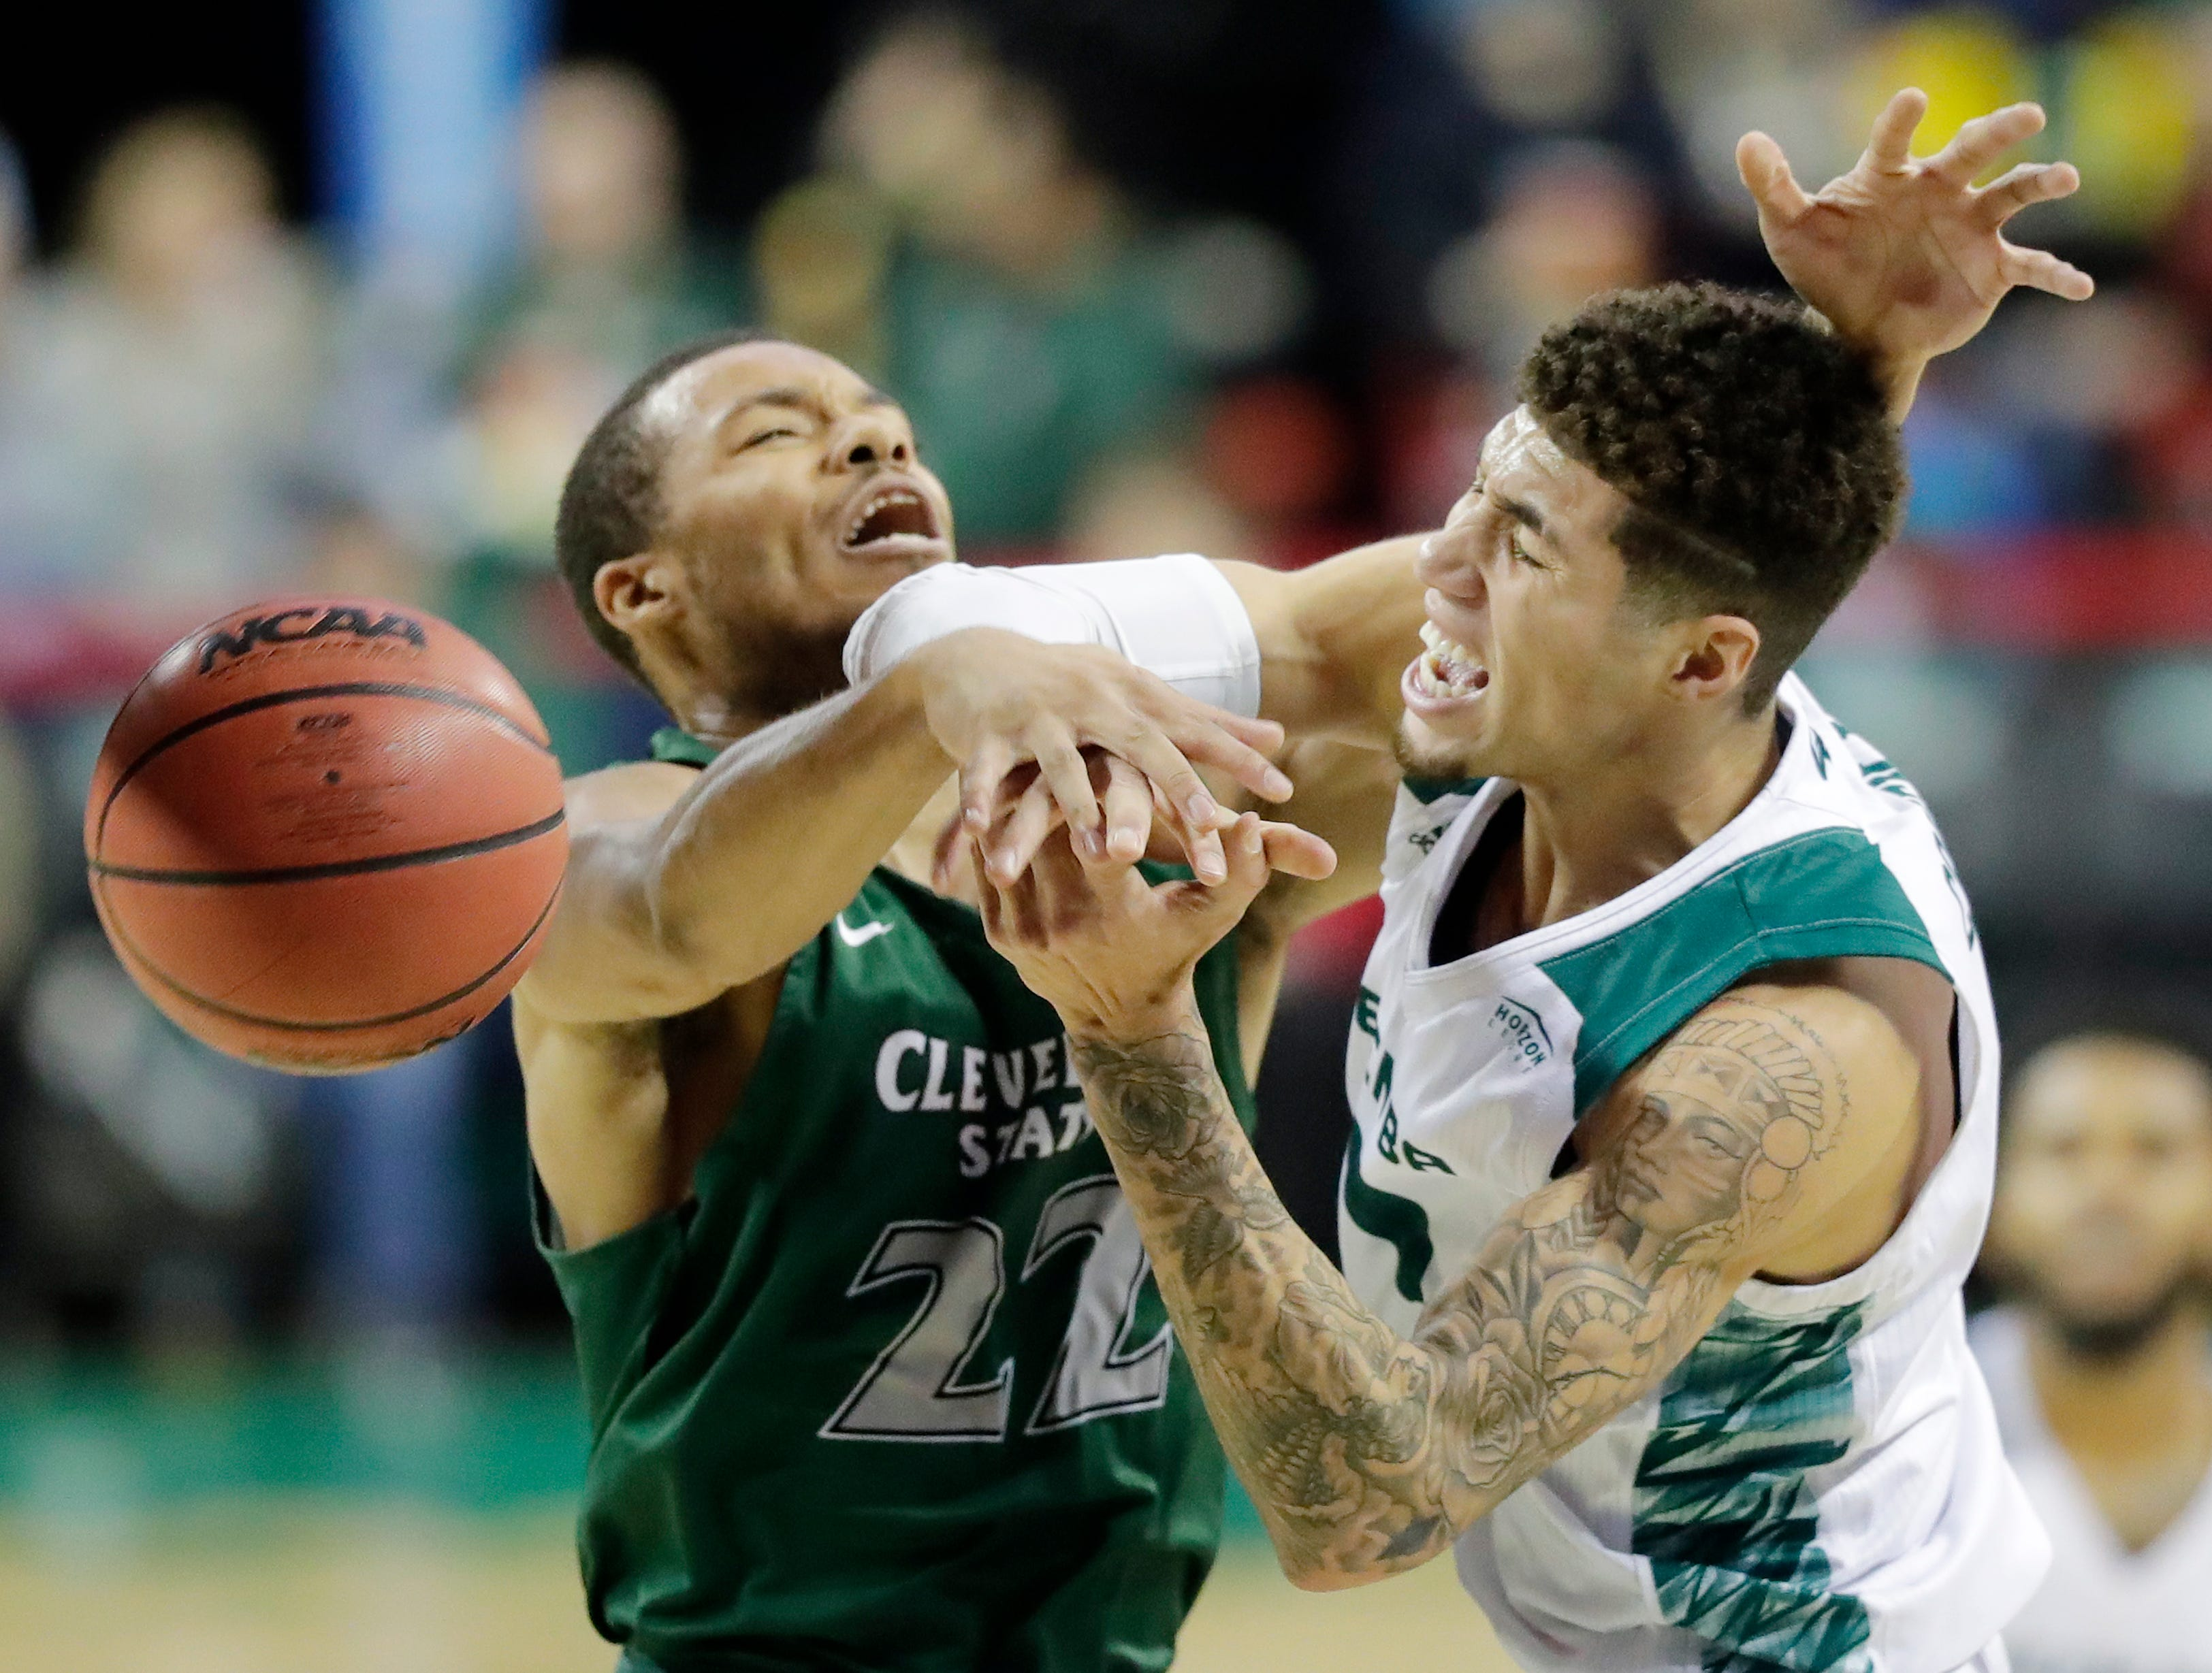 Green Bay Phoenix guard Sandy Cohen III (1) gets fouled by Cleveland State Vikings forward Jaalam Hill (22) in a Horizon League basketball game at the Resch Center on Saturday, January 5, 2019 in Green Bay, Wis.